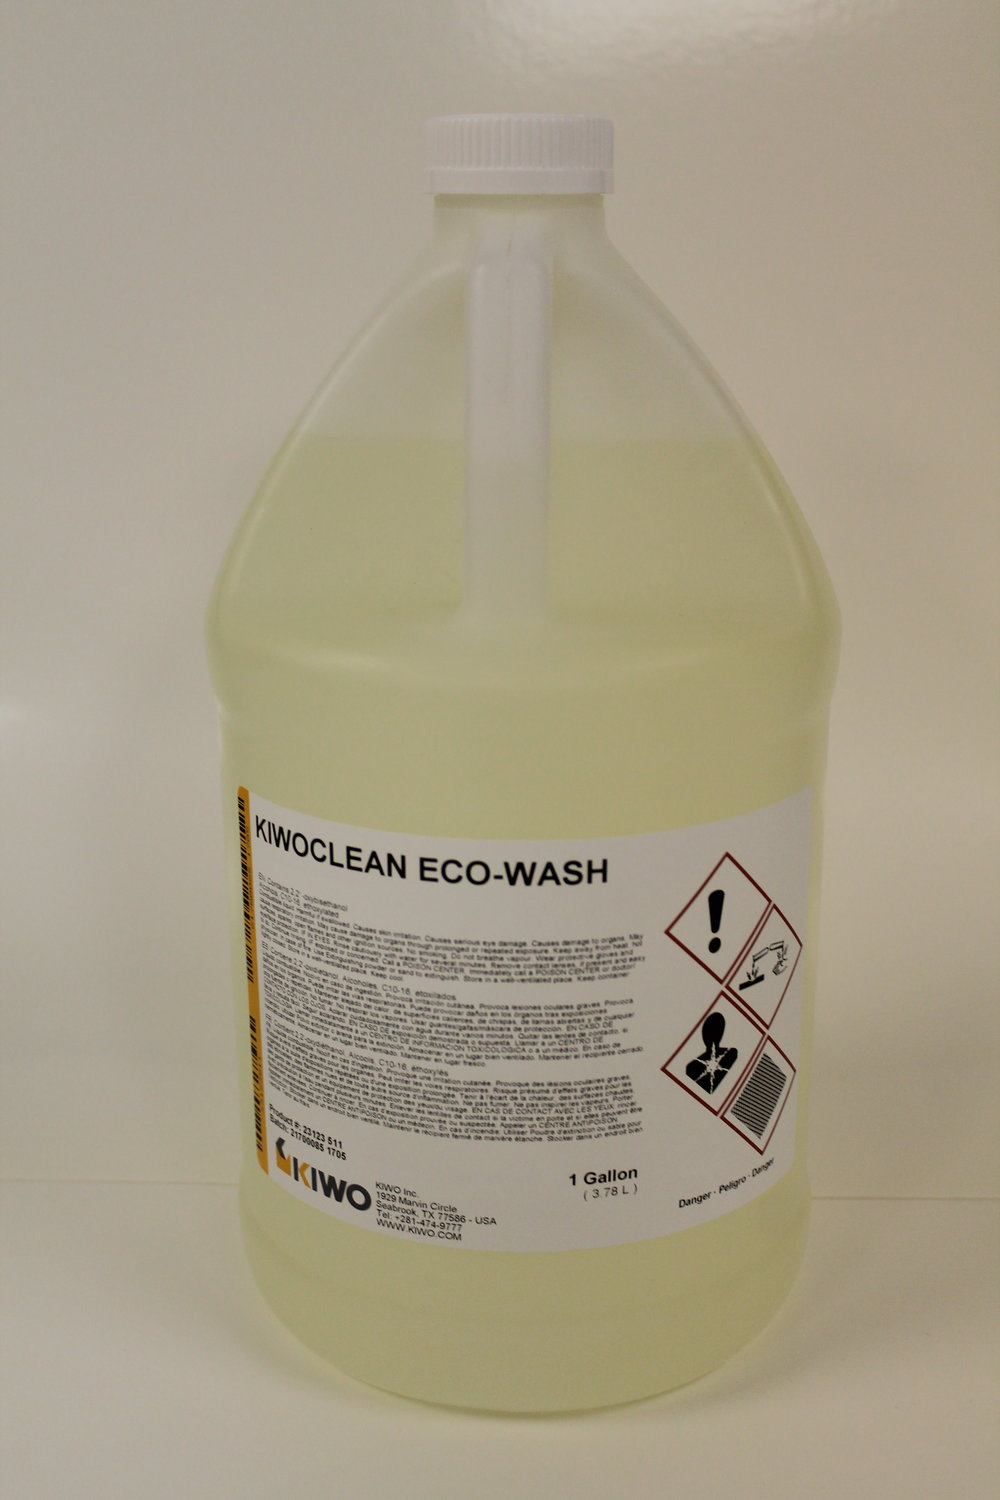 NEW KIWOCLEAN ECO-WASH